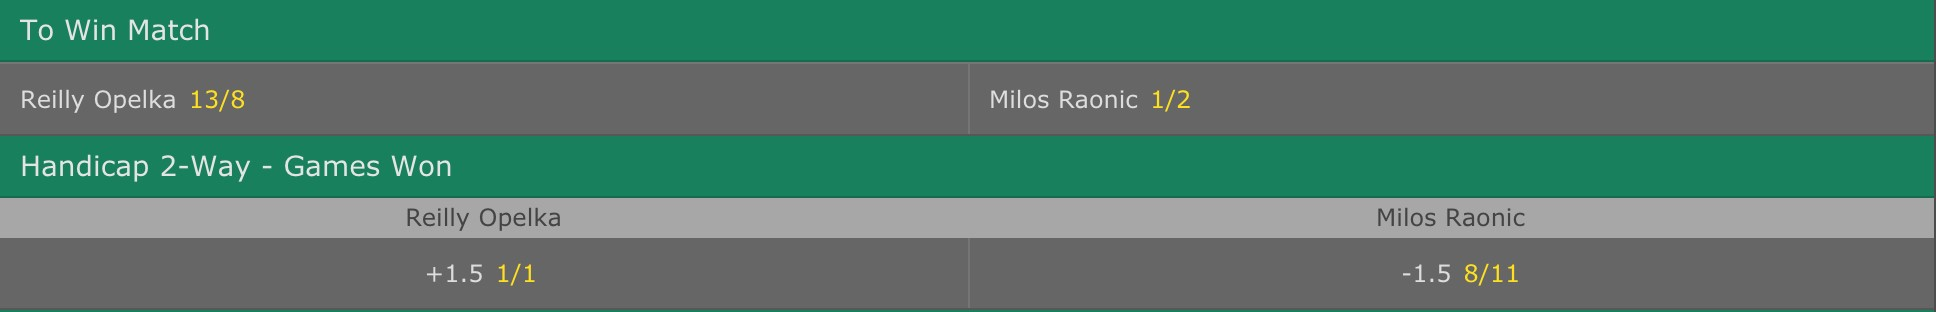 The odds on bet365 for Opelka vs Raonic